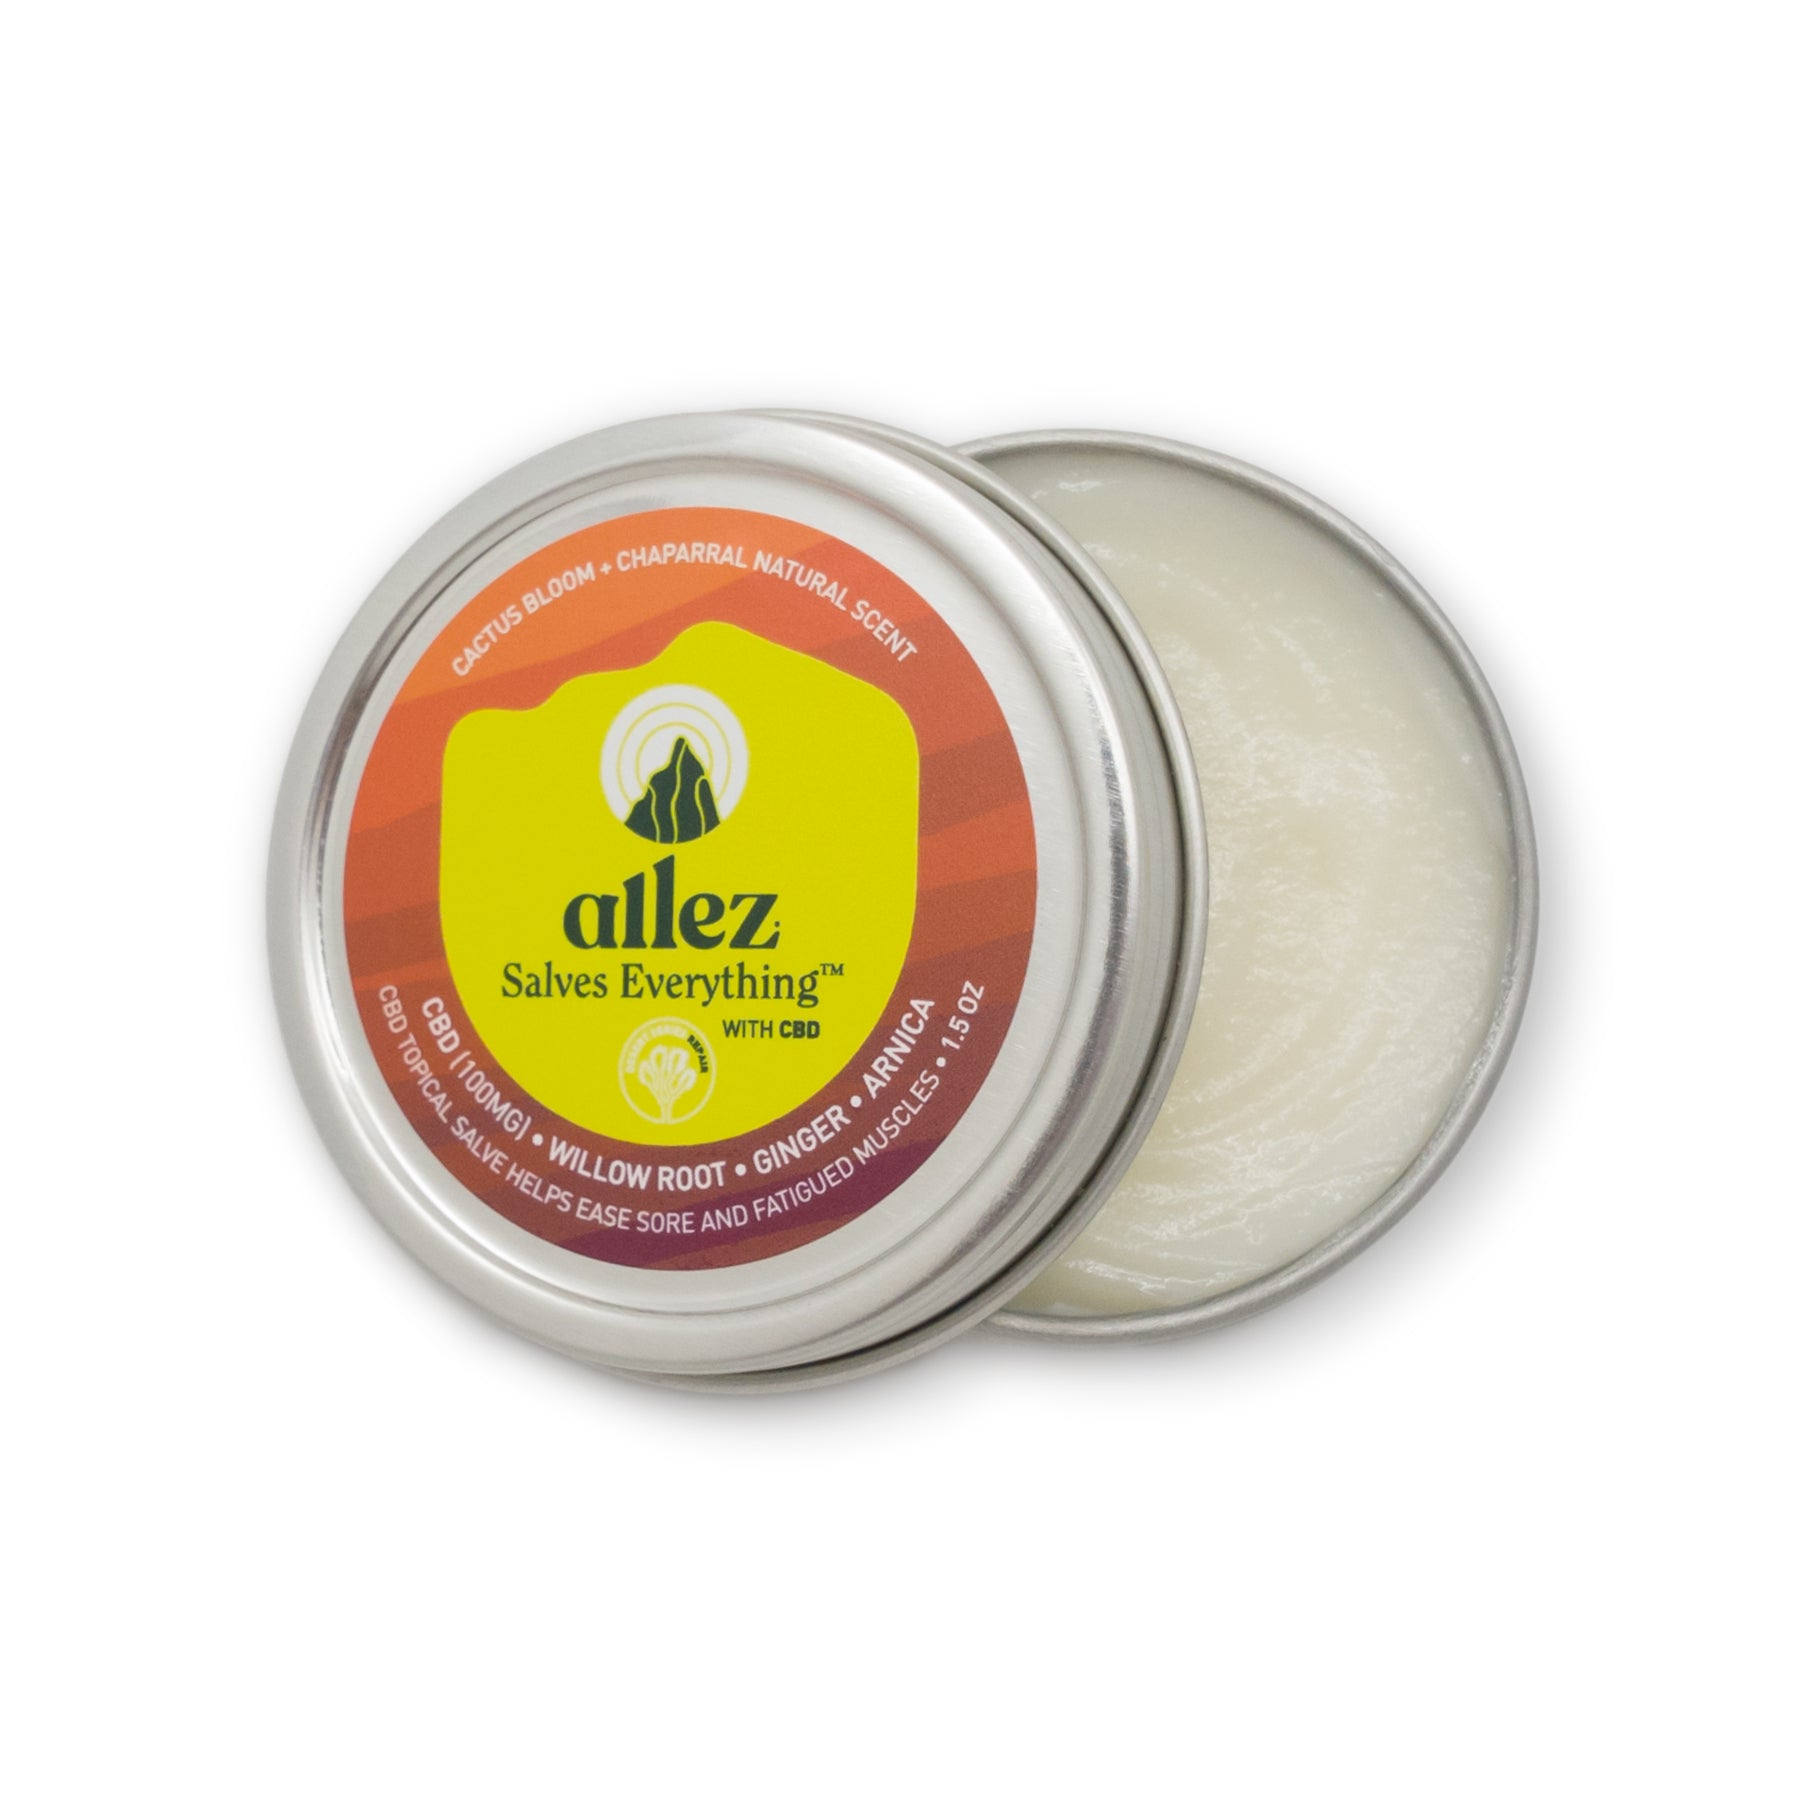 Allez Salves Everything with CBD - RECOVER with Willow Bark - Ginger Root - Arnica - 1.5 oz